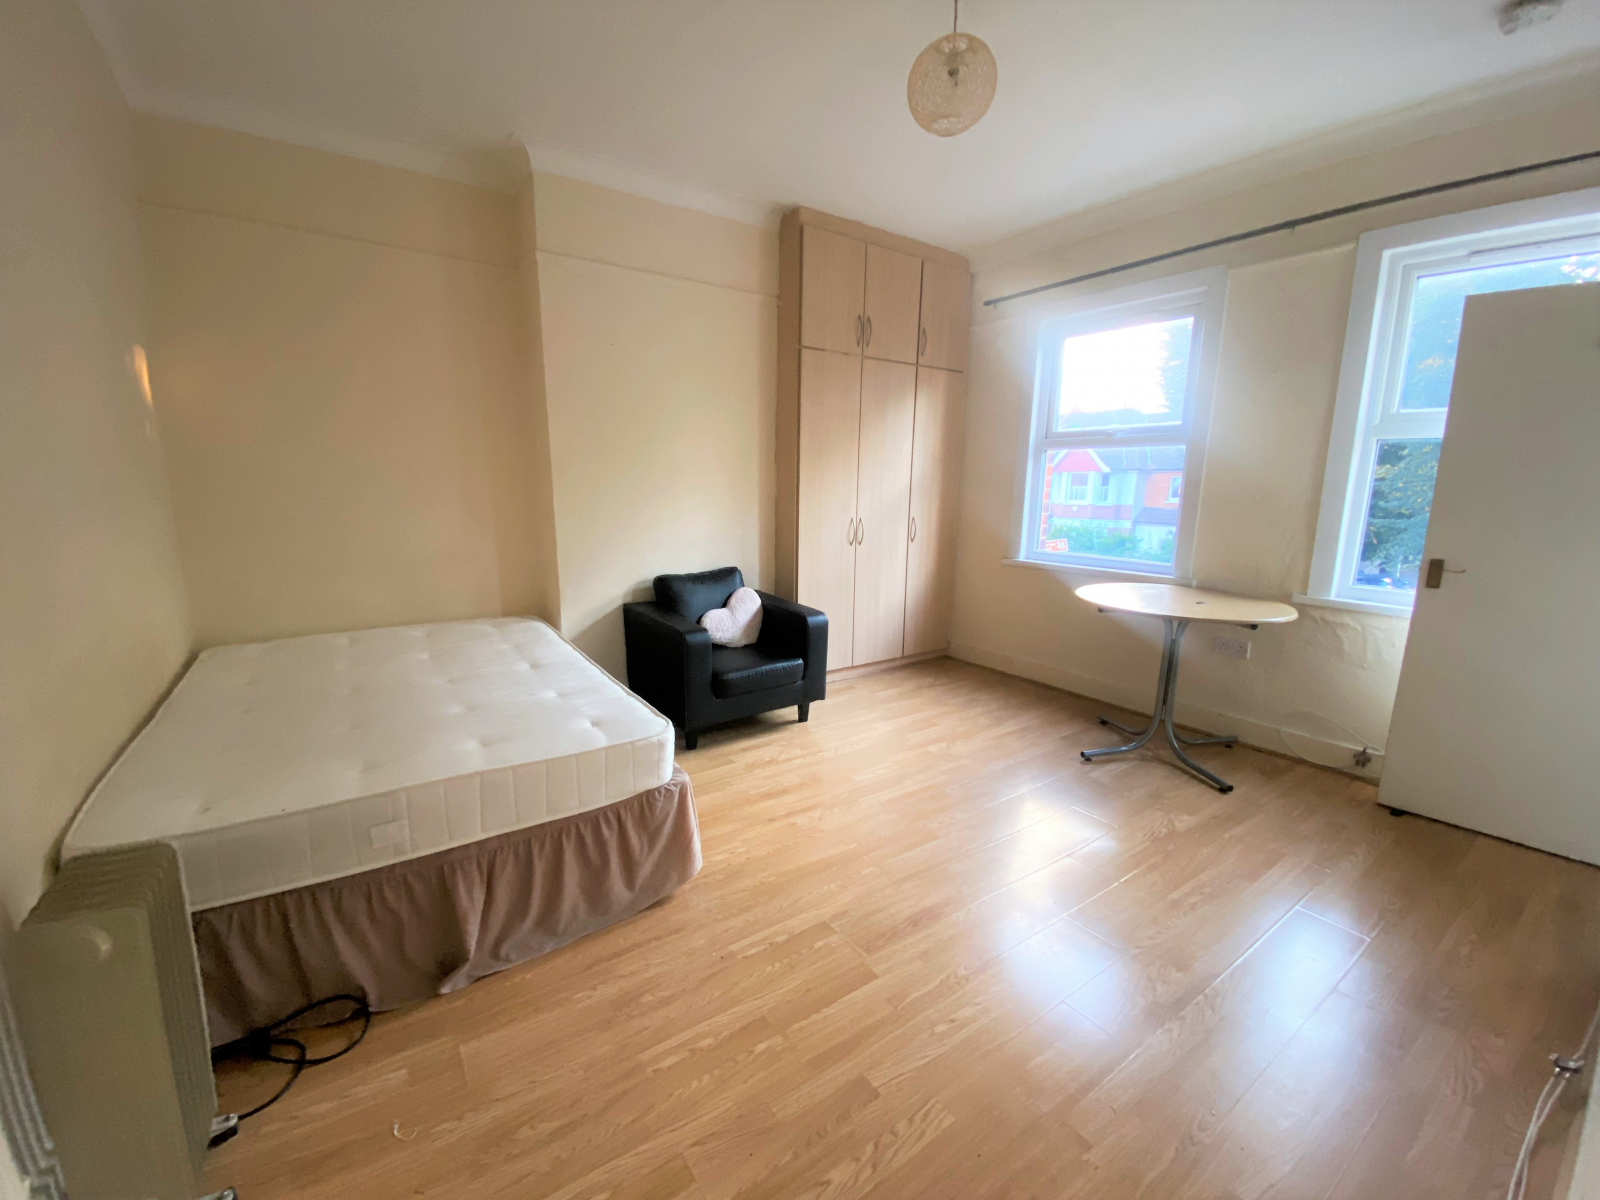 Studio flat to rent in Thornbury road, Osterley, Middlesex, TW7